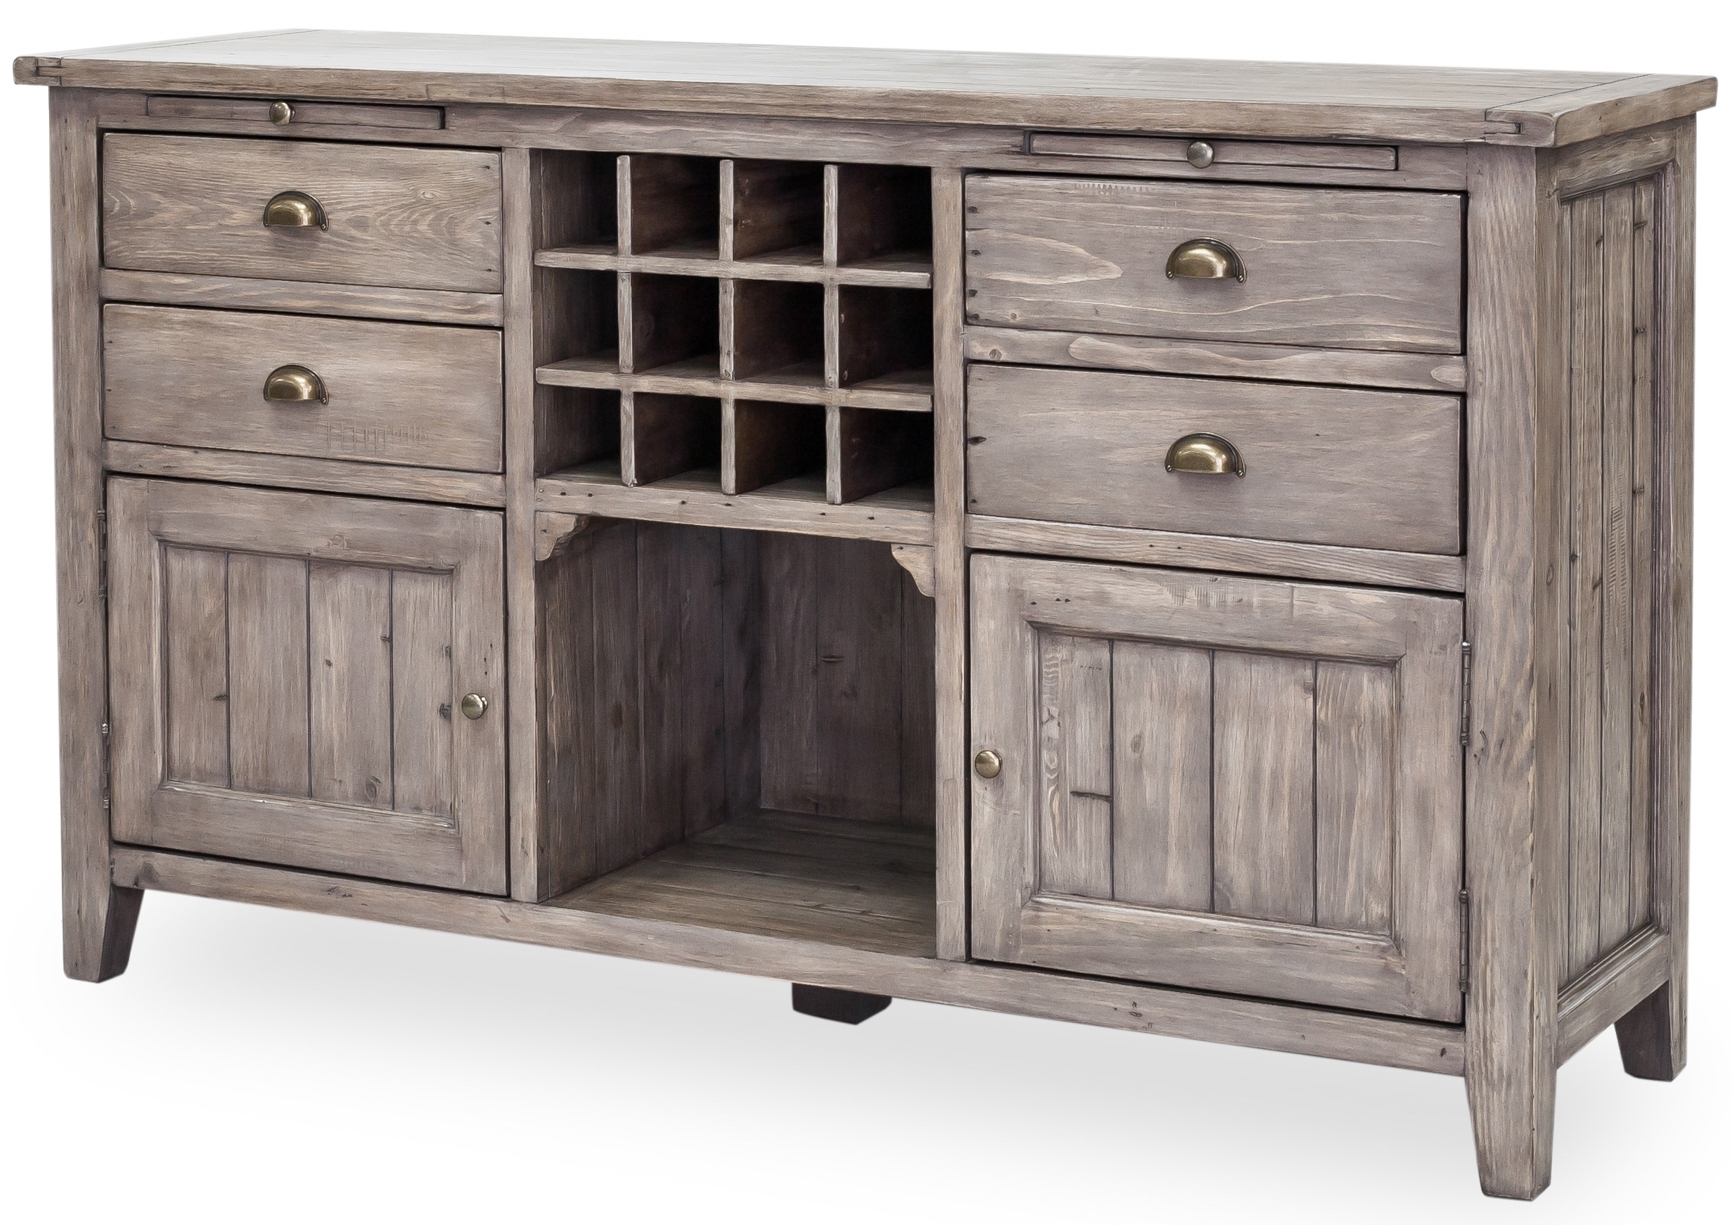 Cabinets, Consoles & Sofa Tables | Htgt Furniture Regarding Most Recent Light Brown Reclaimed Elm & Pine 84 Inch Sideboards (View 6 of 20)